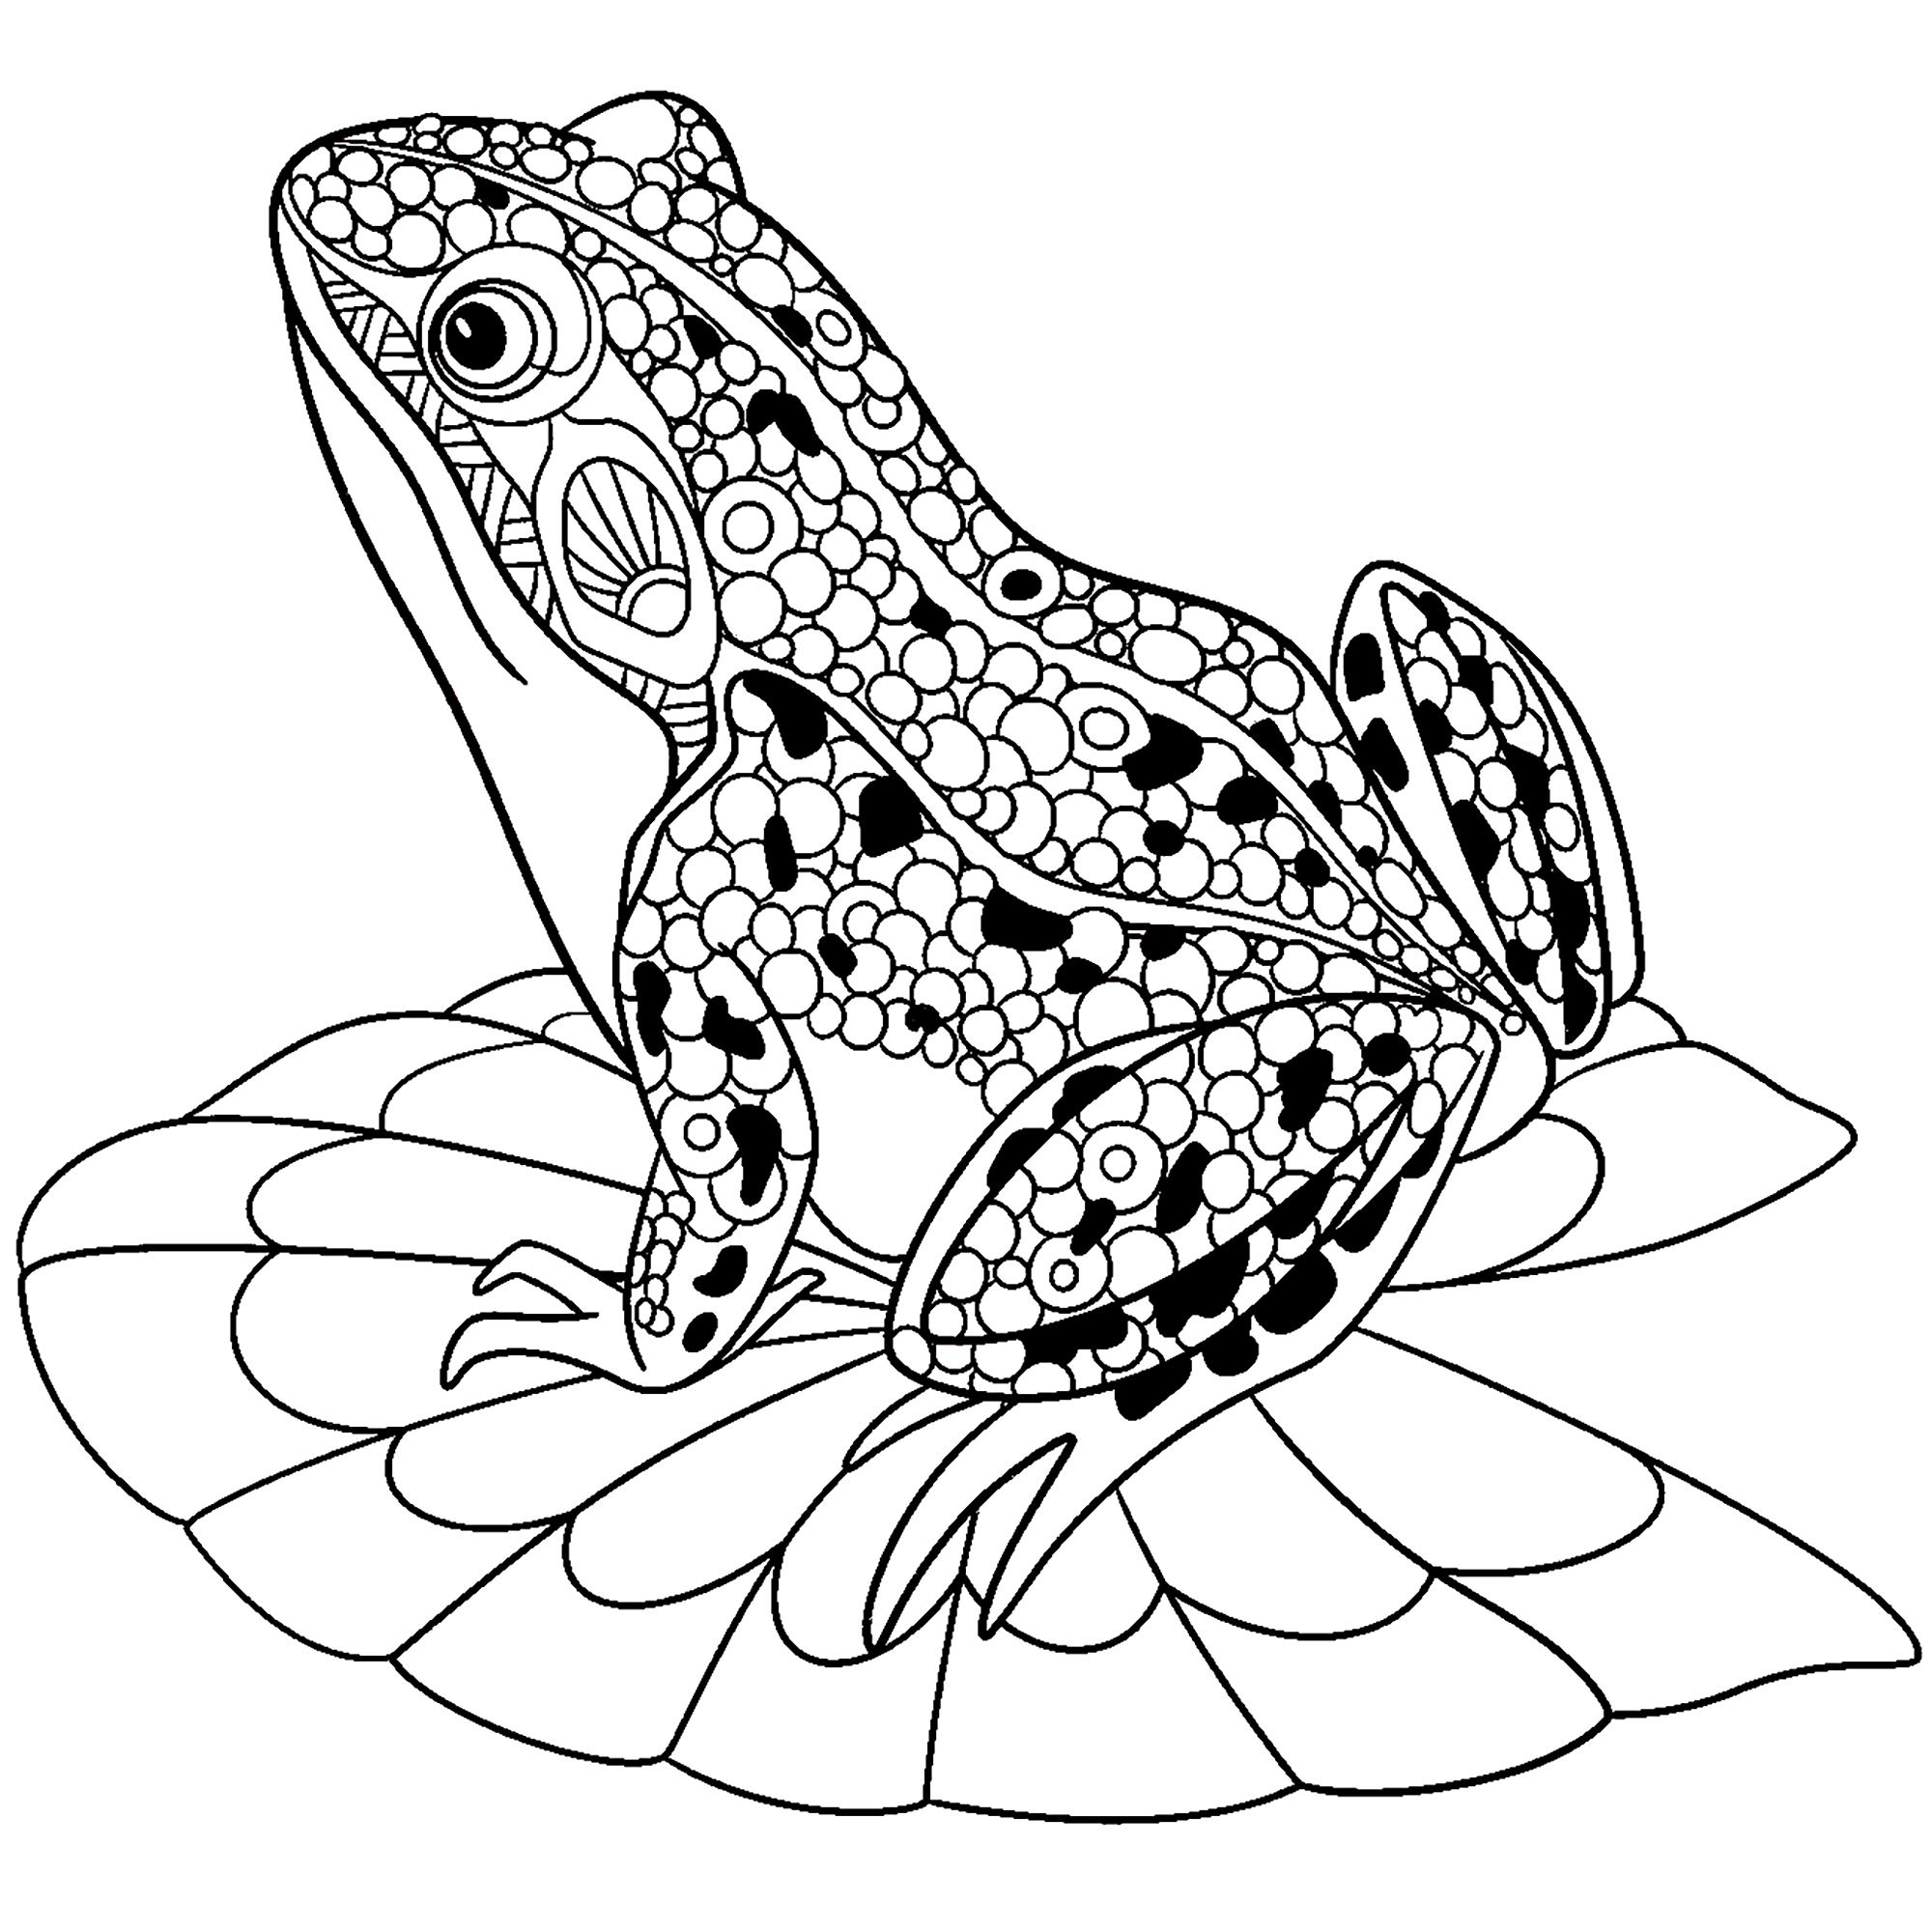 frog coloring sheets cute frog coloring pages bestappsforkidscom sheets coloring frog